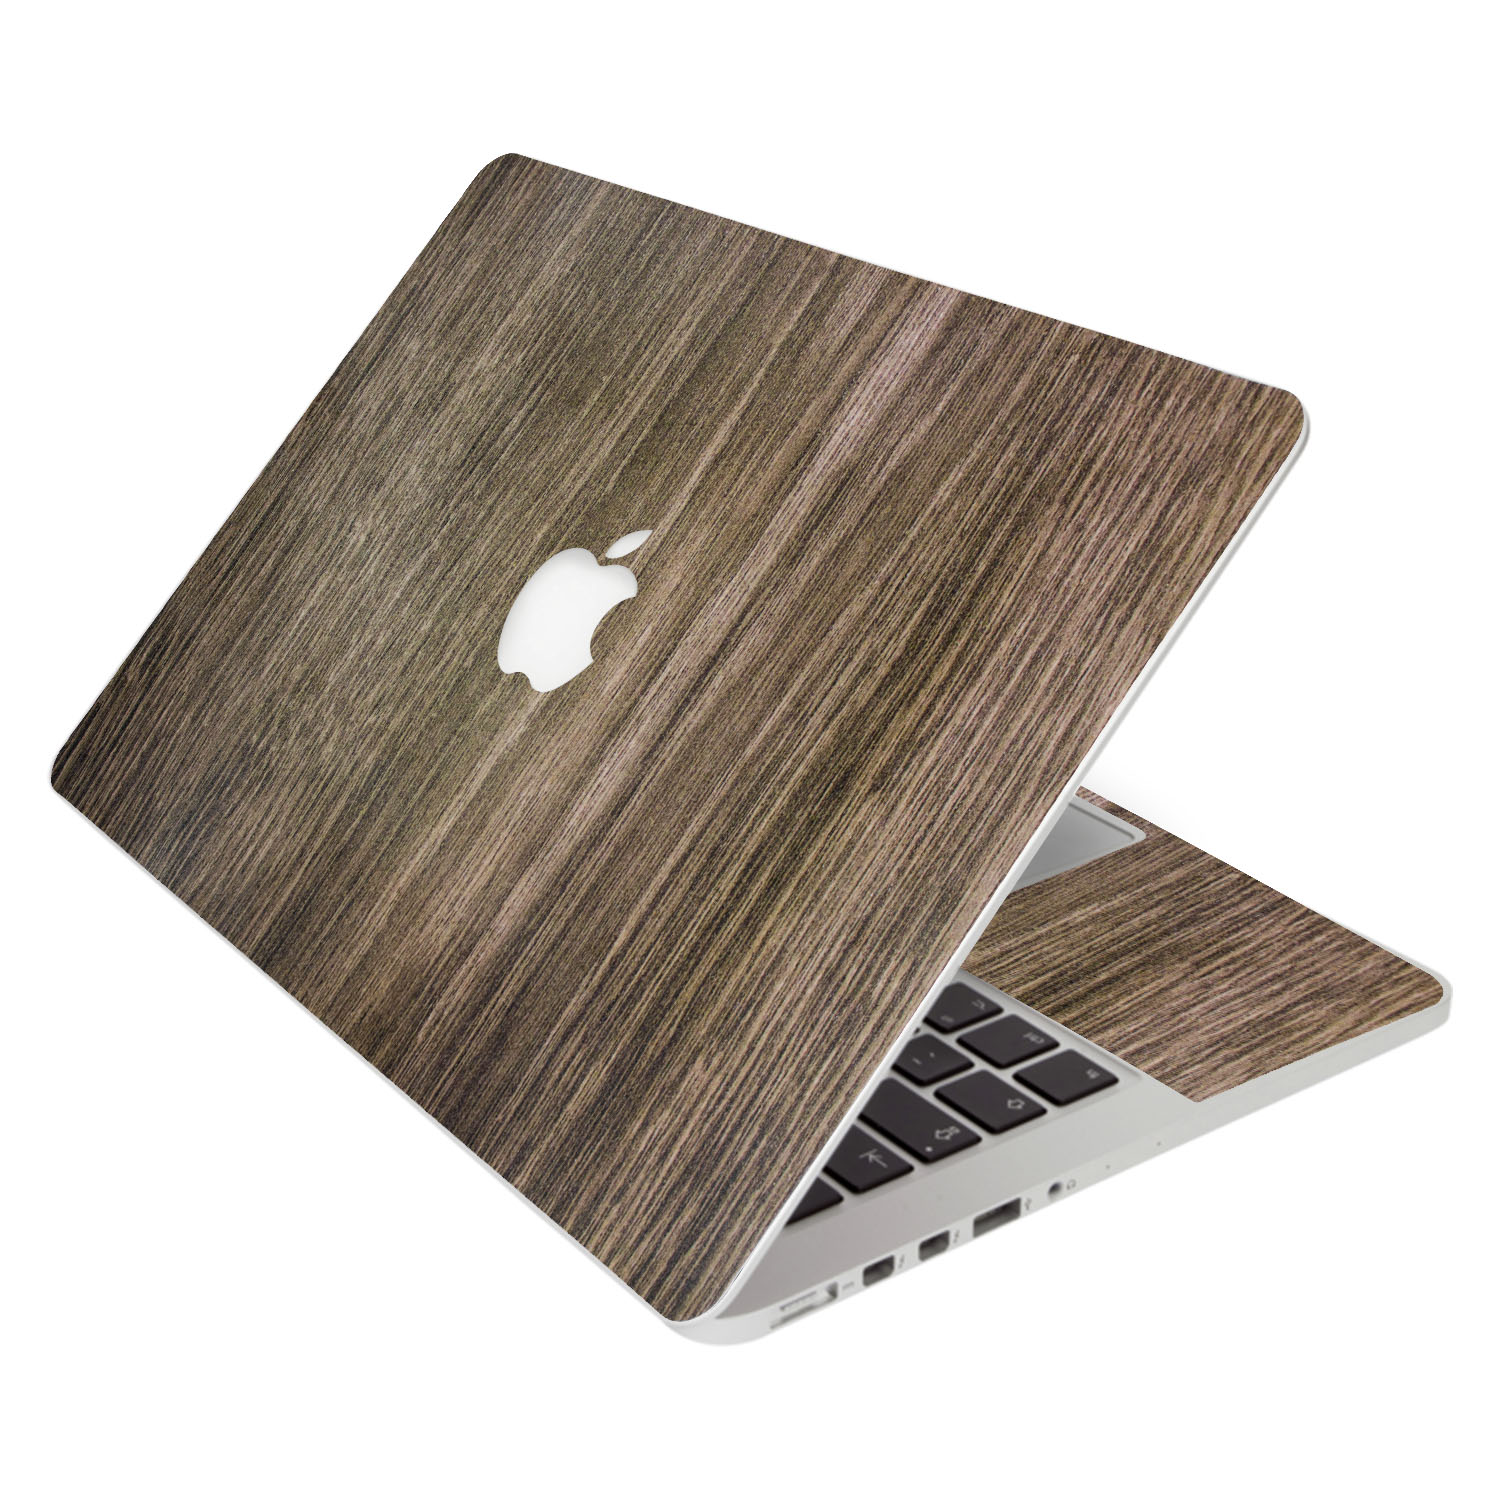 SkylerShield 4-in-1 Semi Transparent Protector 3M Vinyl Skin Decal Laptop Notebook Decals Sticker Keyboard Cover for Apple Macbook Pro A1706 / A1708 / 2016 Model (13-inch) Brown Wood Texture